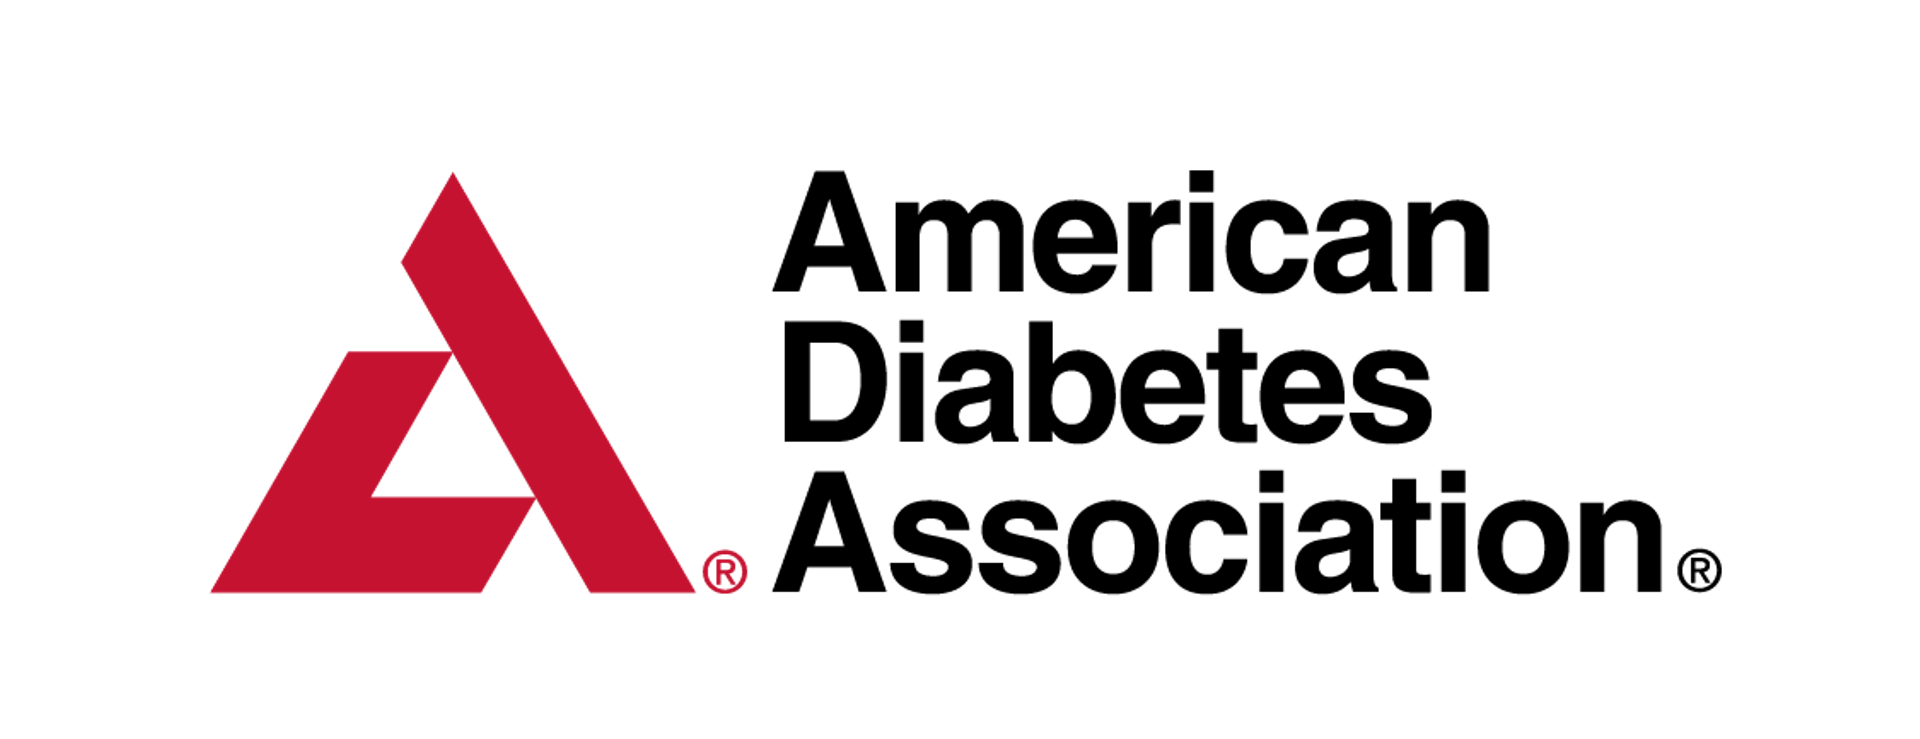 CNY American Diabetes Association